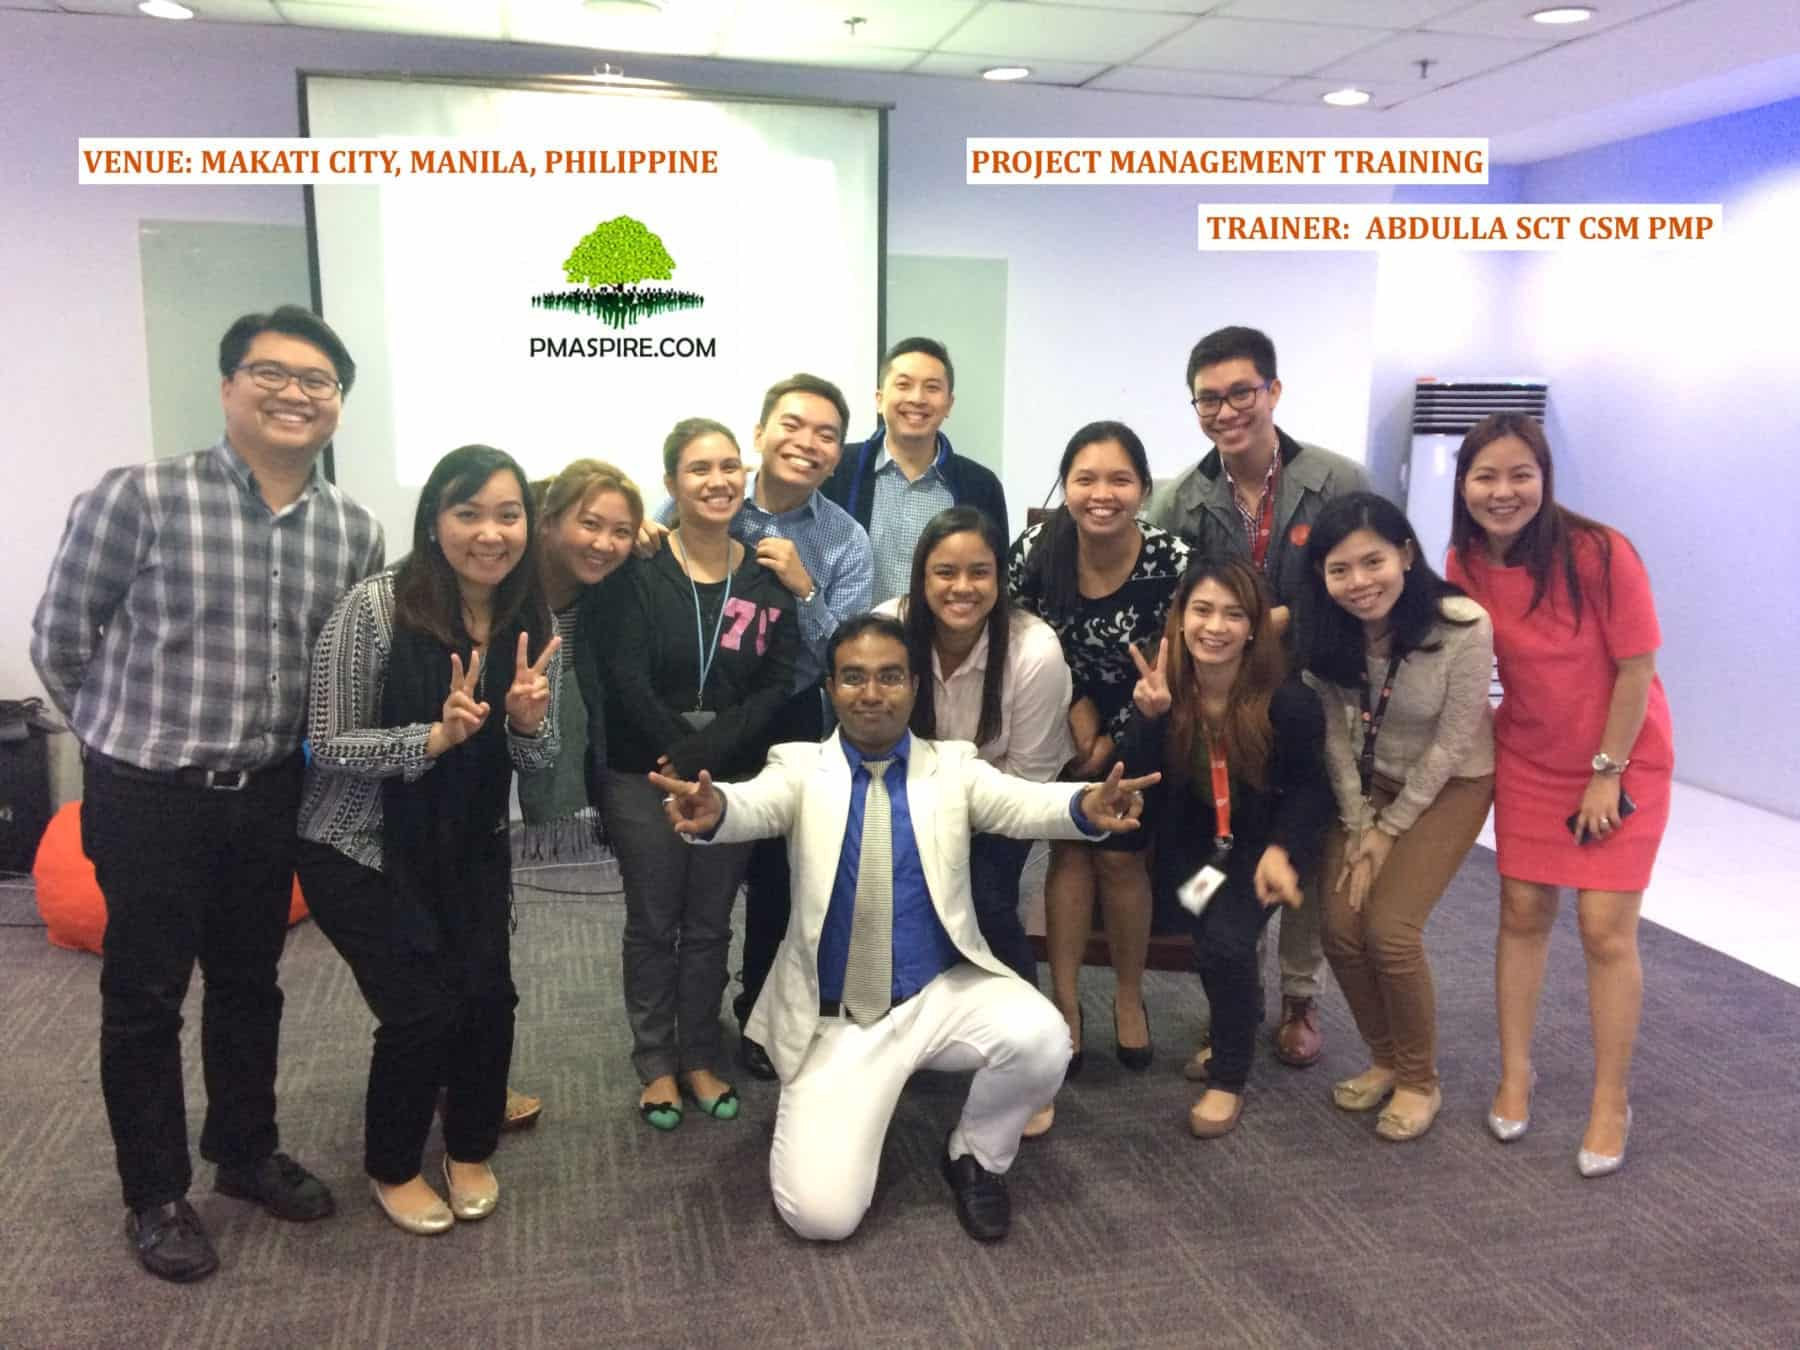 pmaspire_pmp_training_philippine